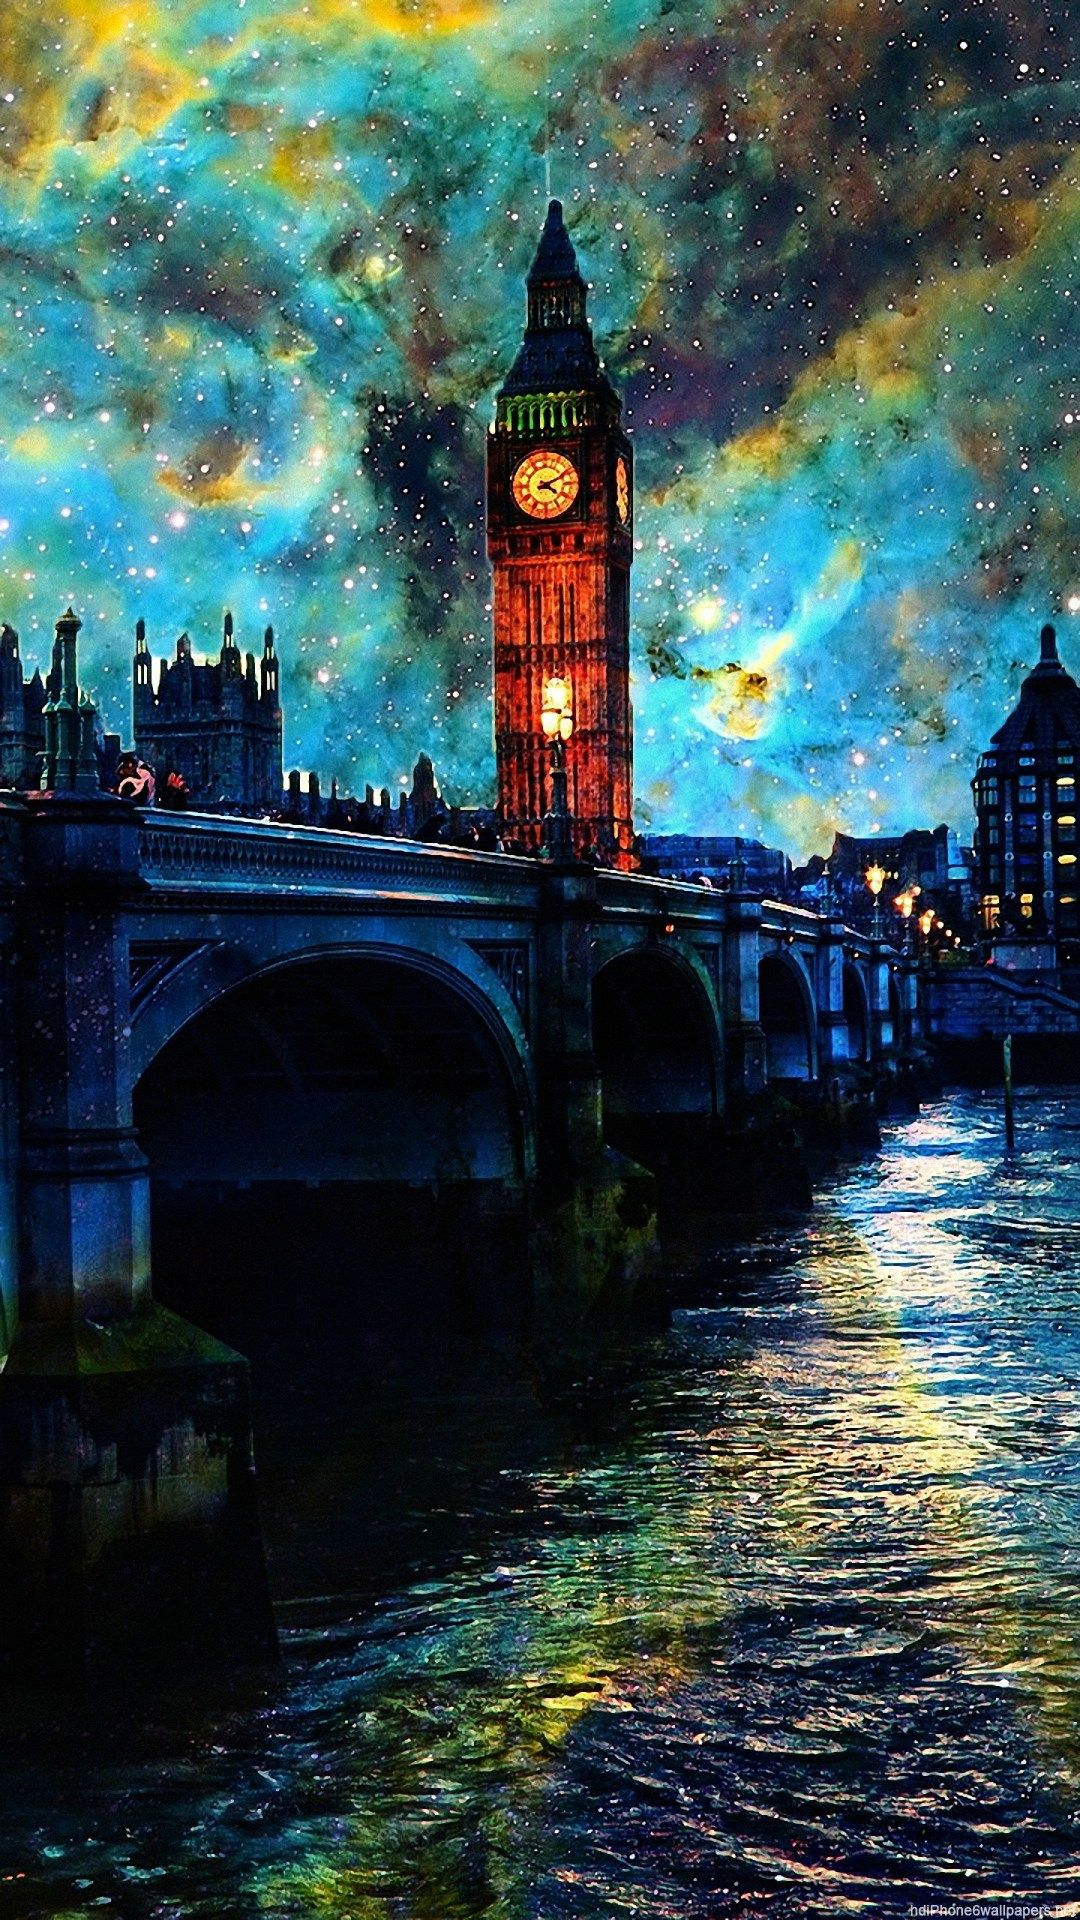 Iphone 8 Wallpapers Hd London painting, Hd wallpaper iphone